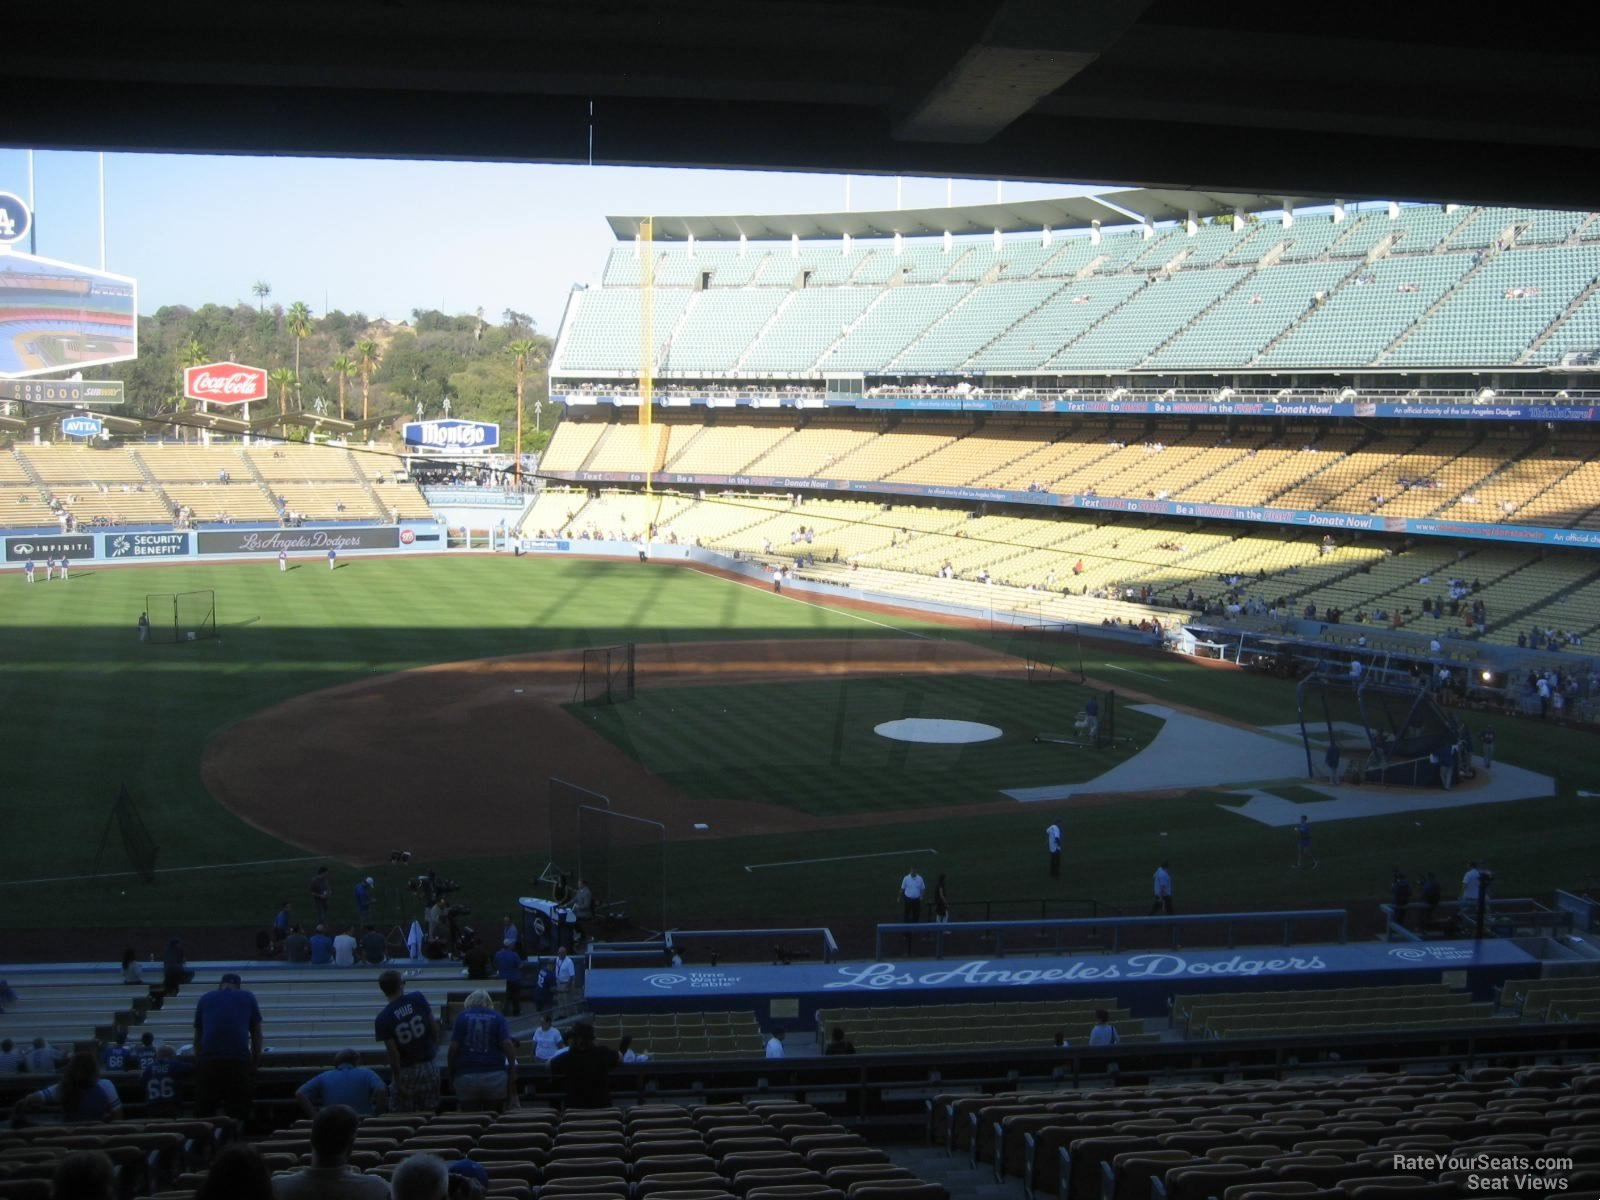 View from Section 137 Row T at Dodger Stadium